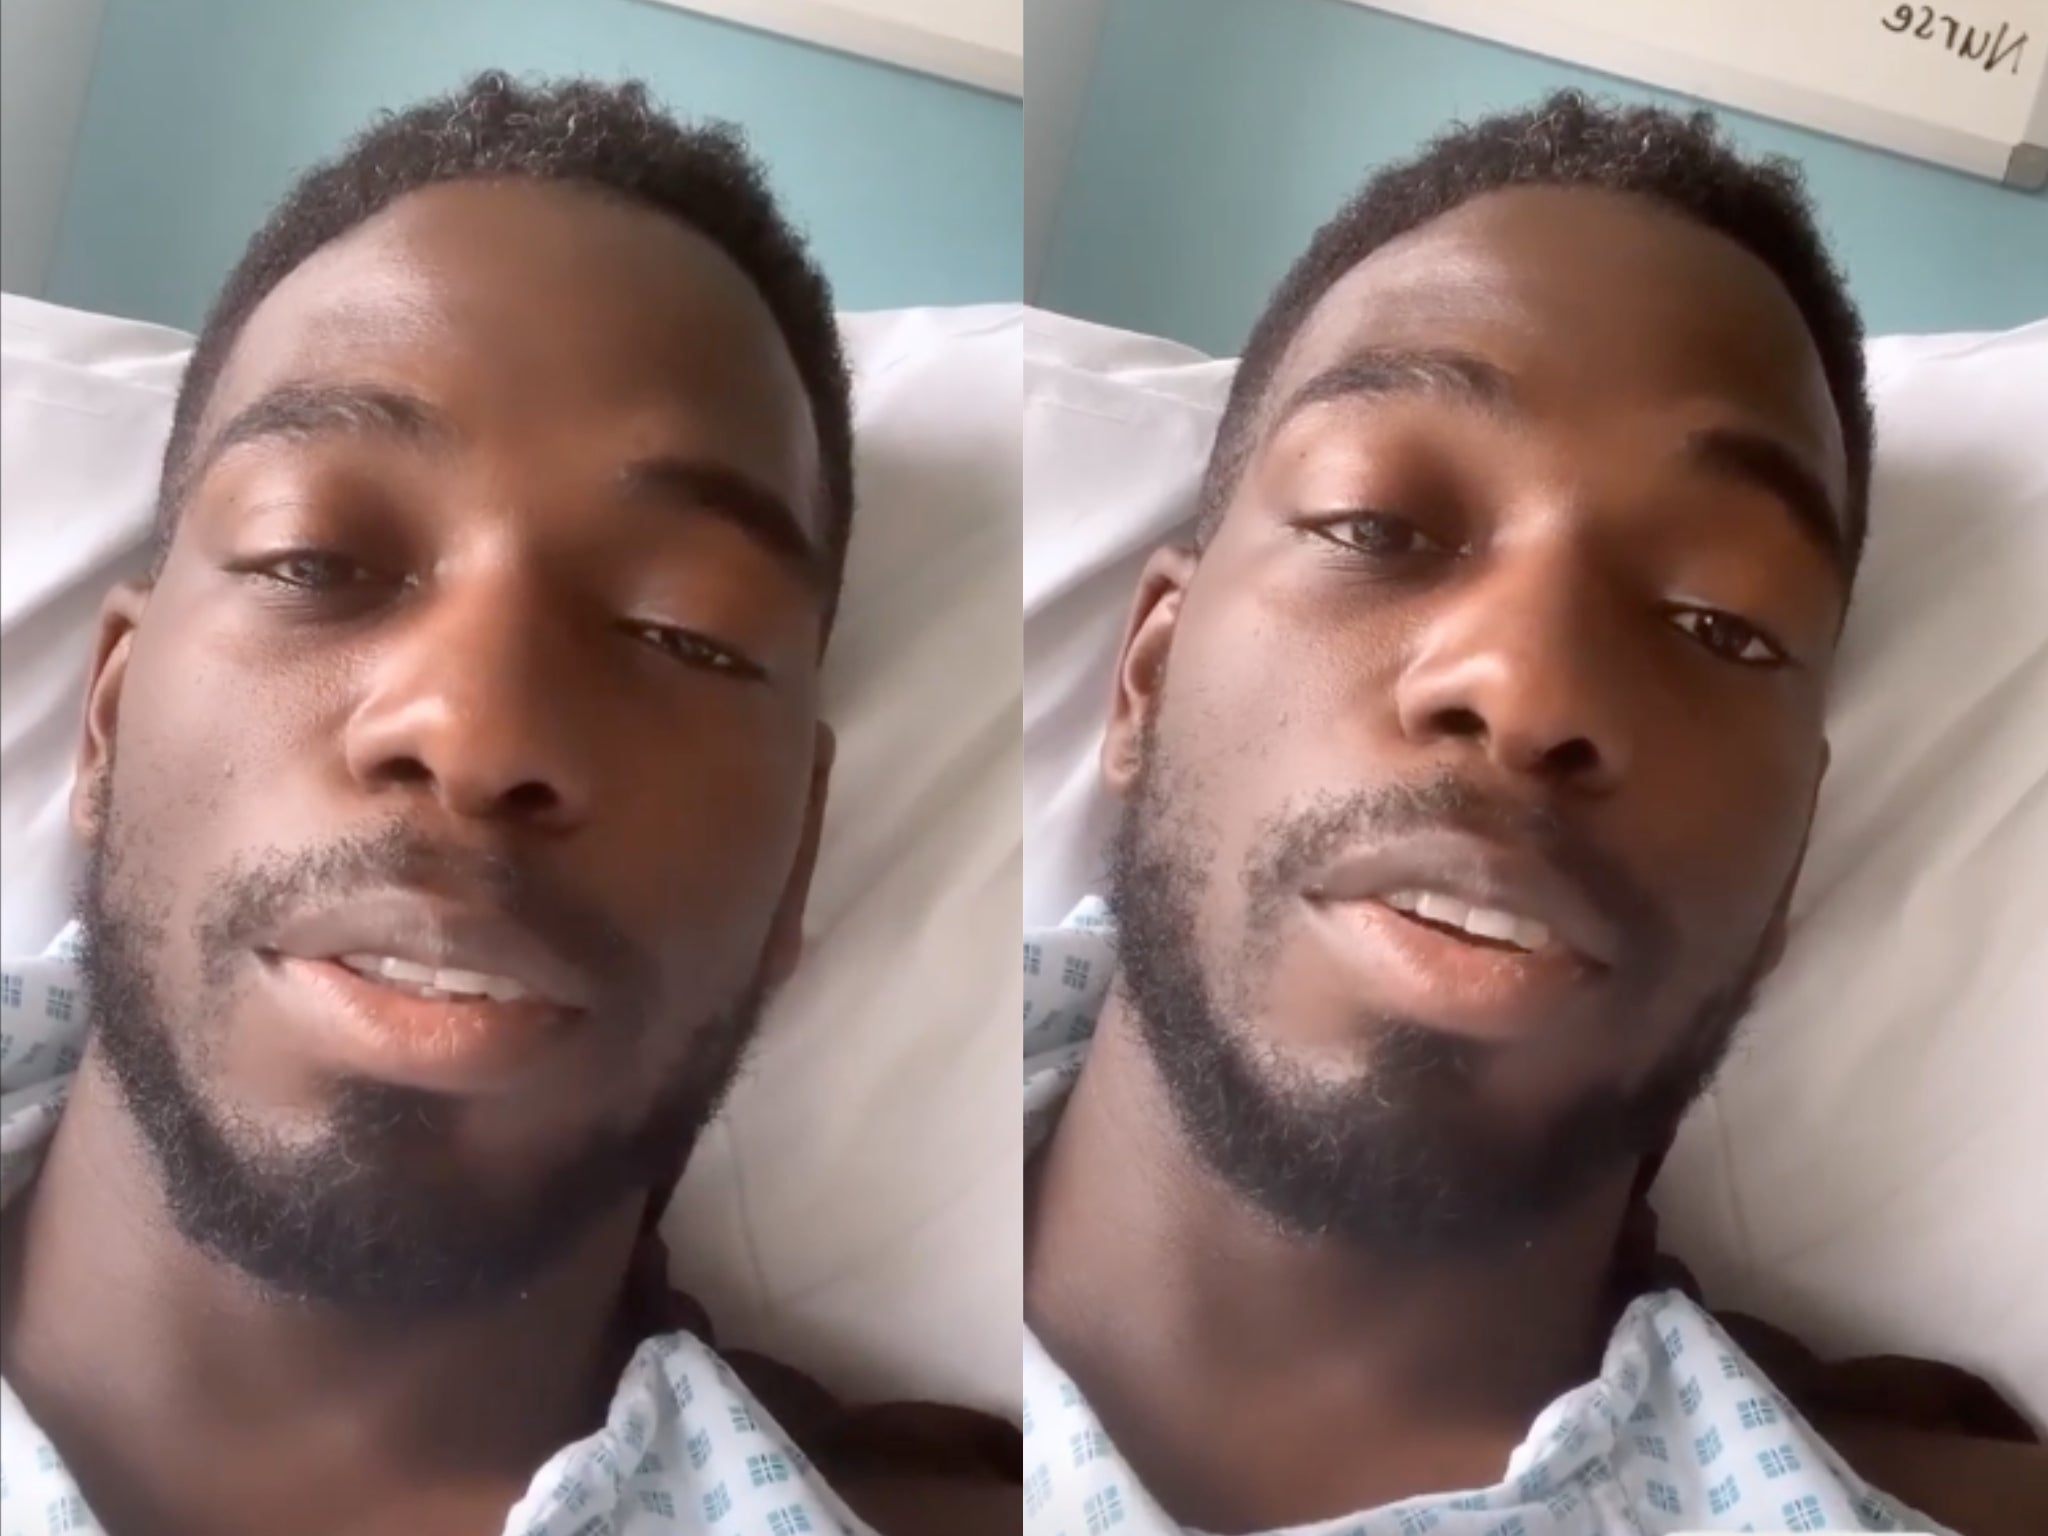 Love Island's Marcel Somerville says he 'nearly died' in video shared from hospital bed